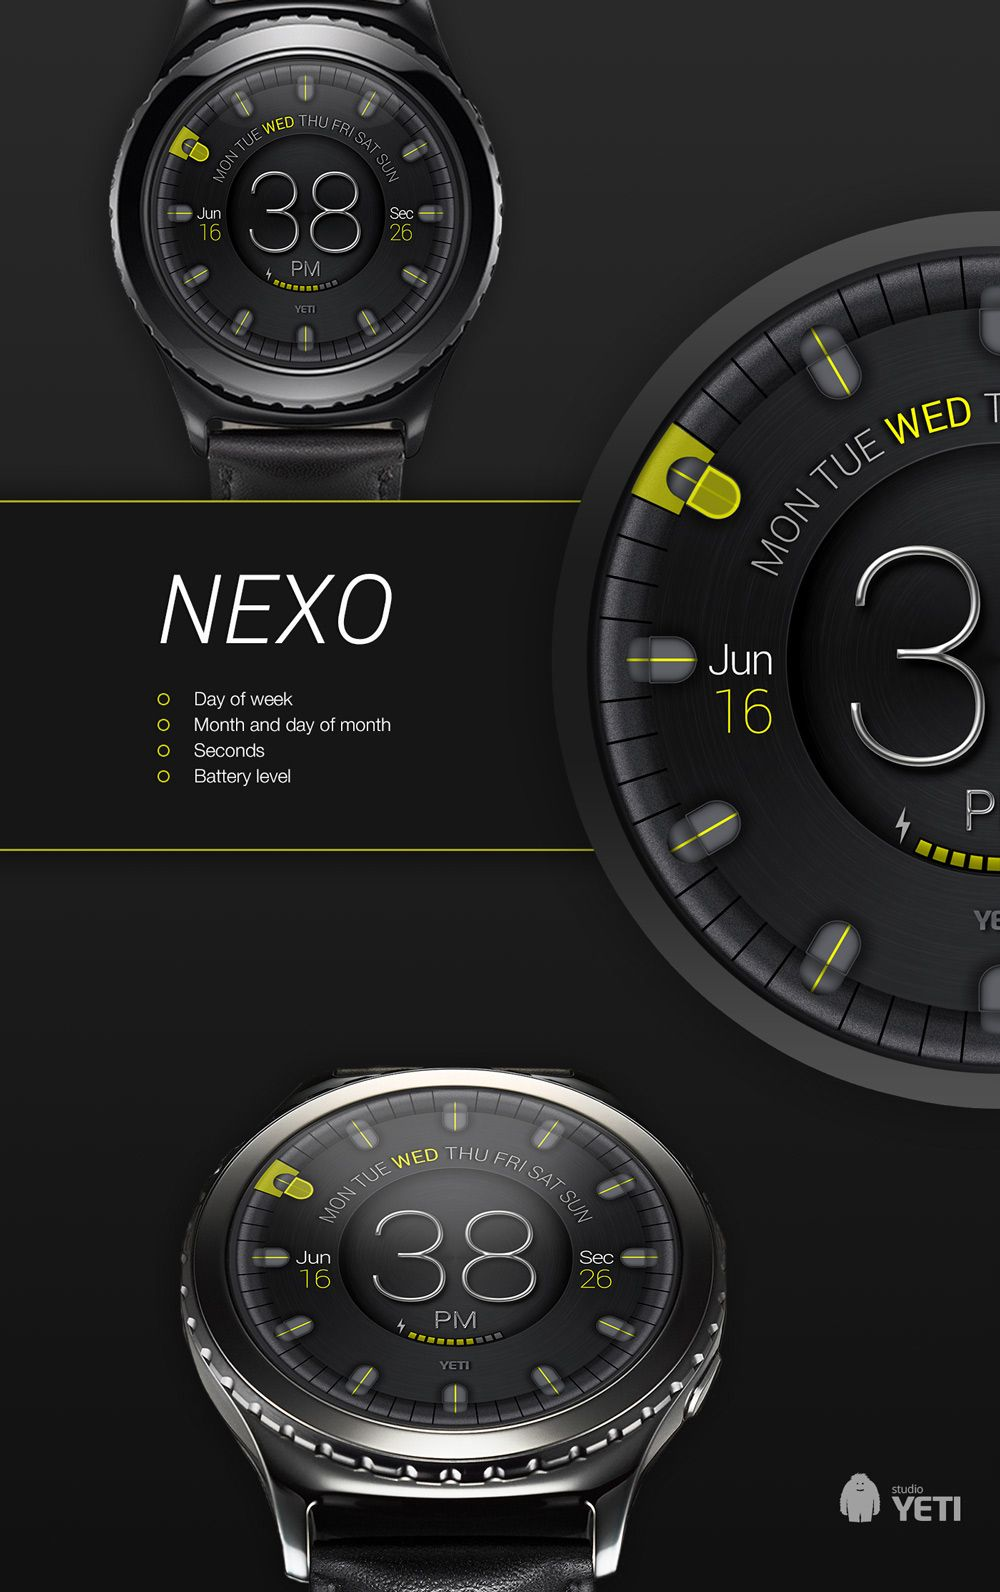 Nexo Watch Face On Behance Digital Watch Face Watch Faces Watches For Men